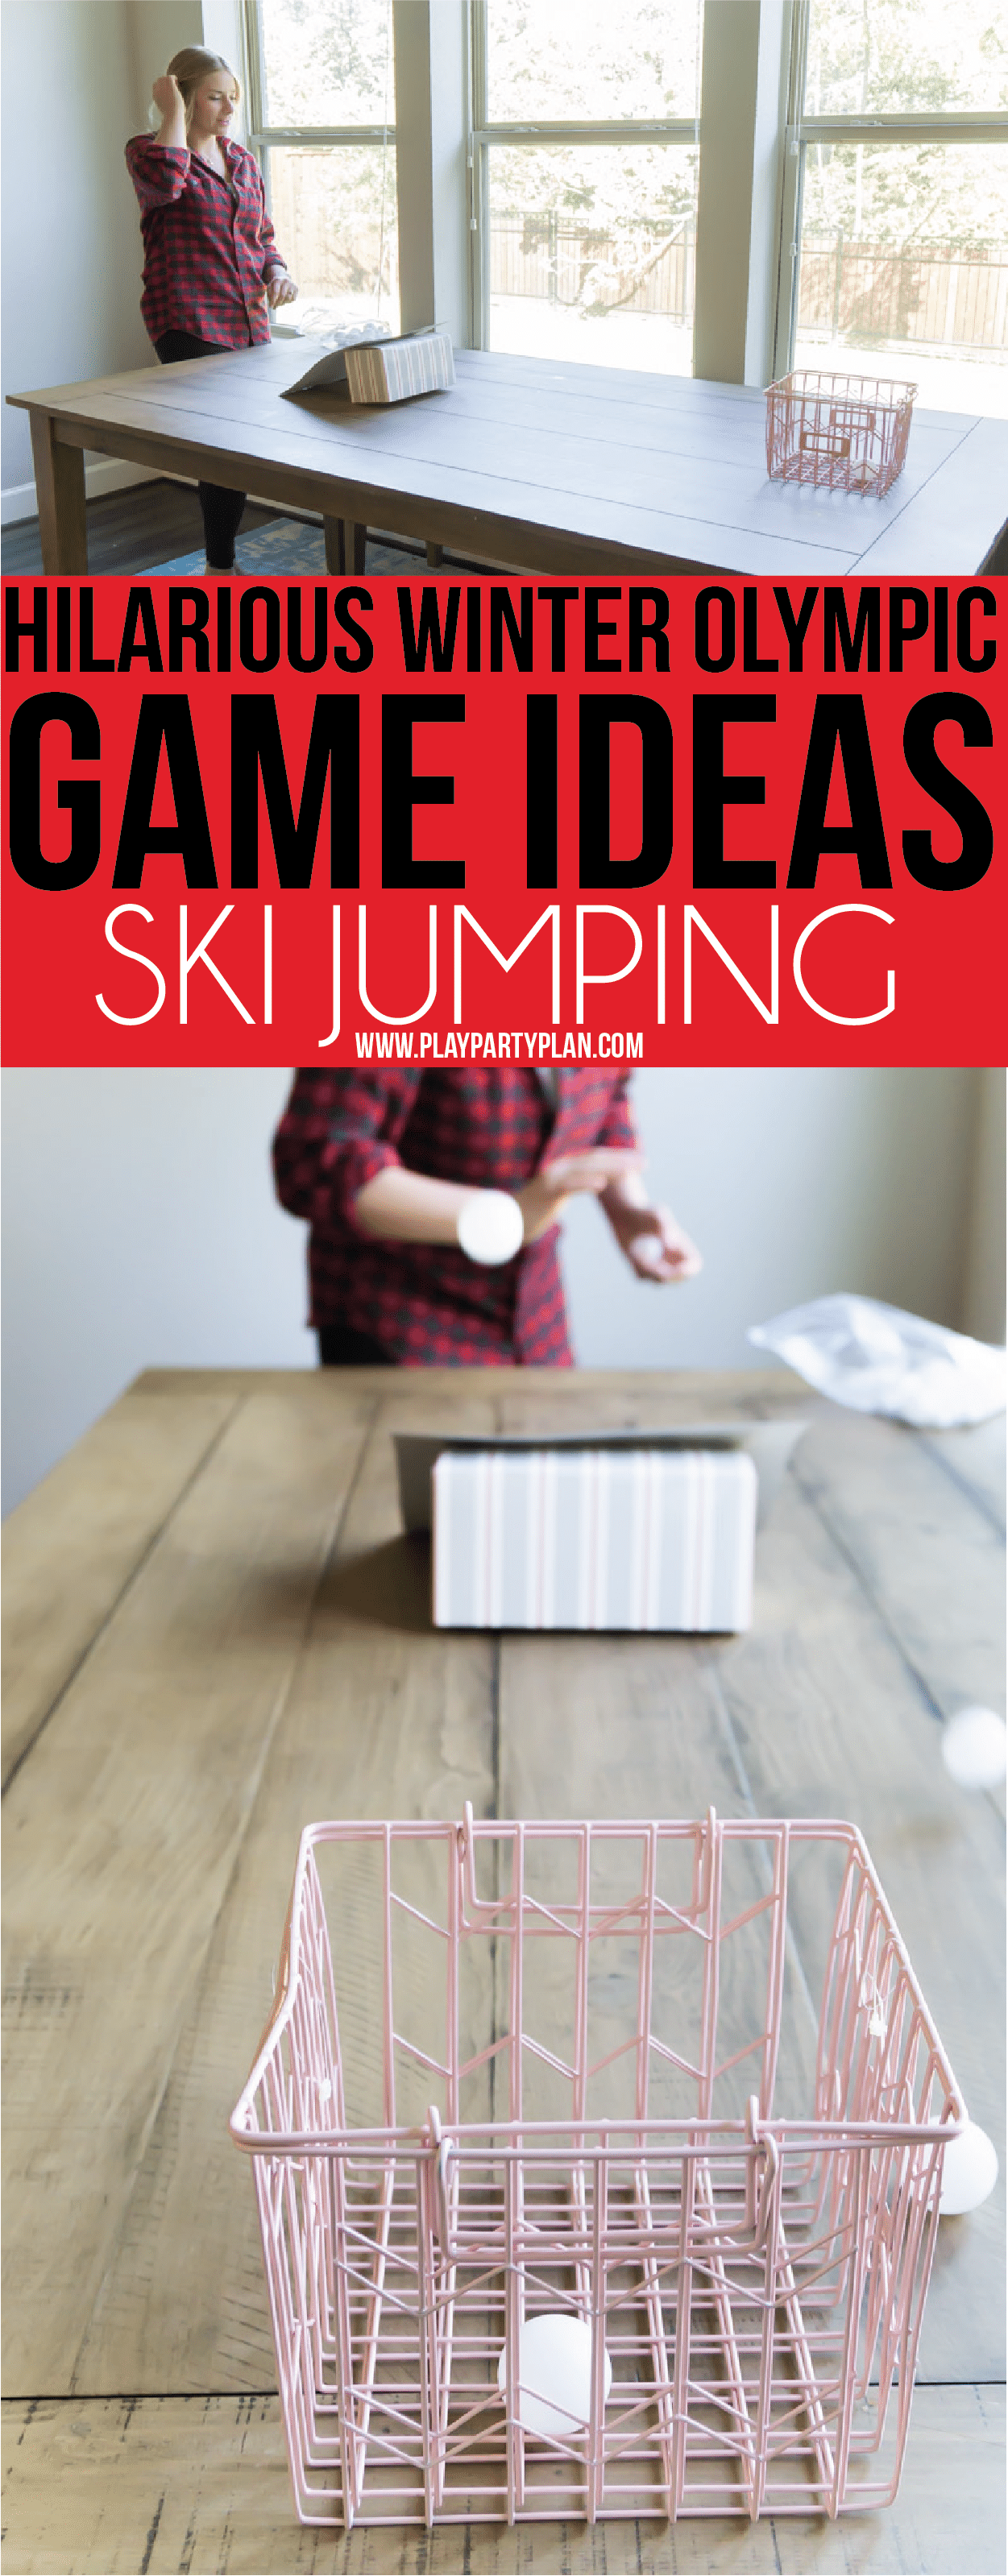 Olympic themed party games inspired by Winter Olympic sports